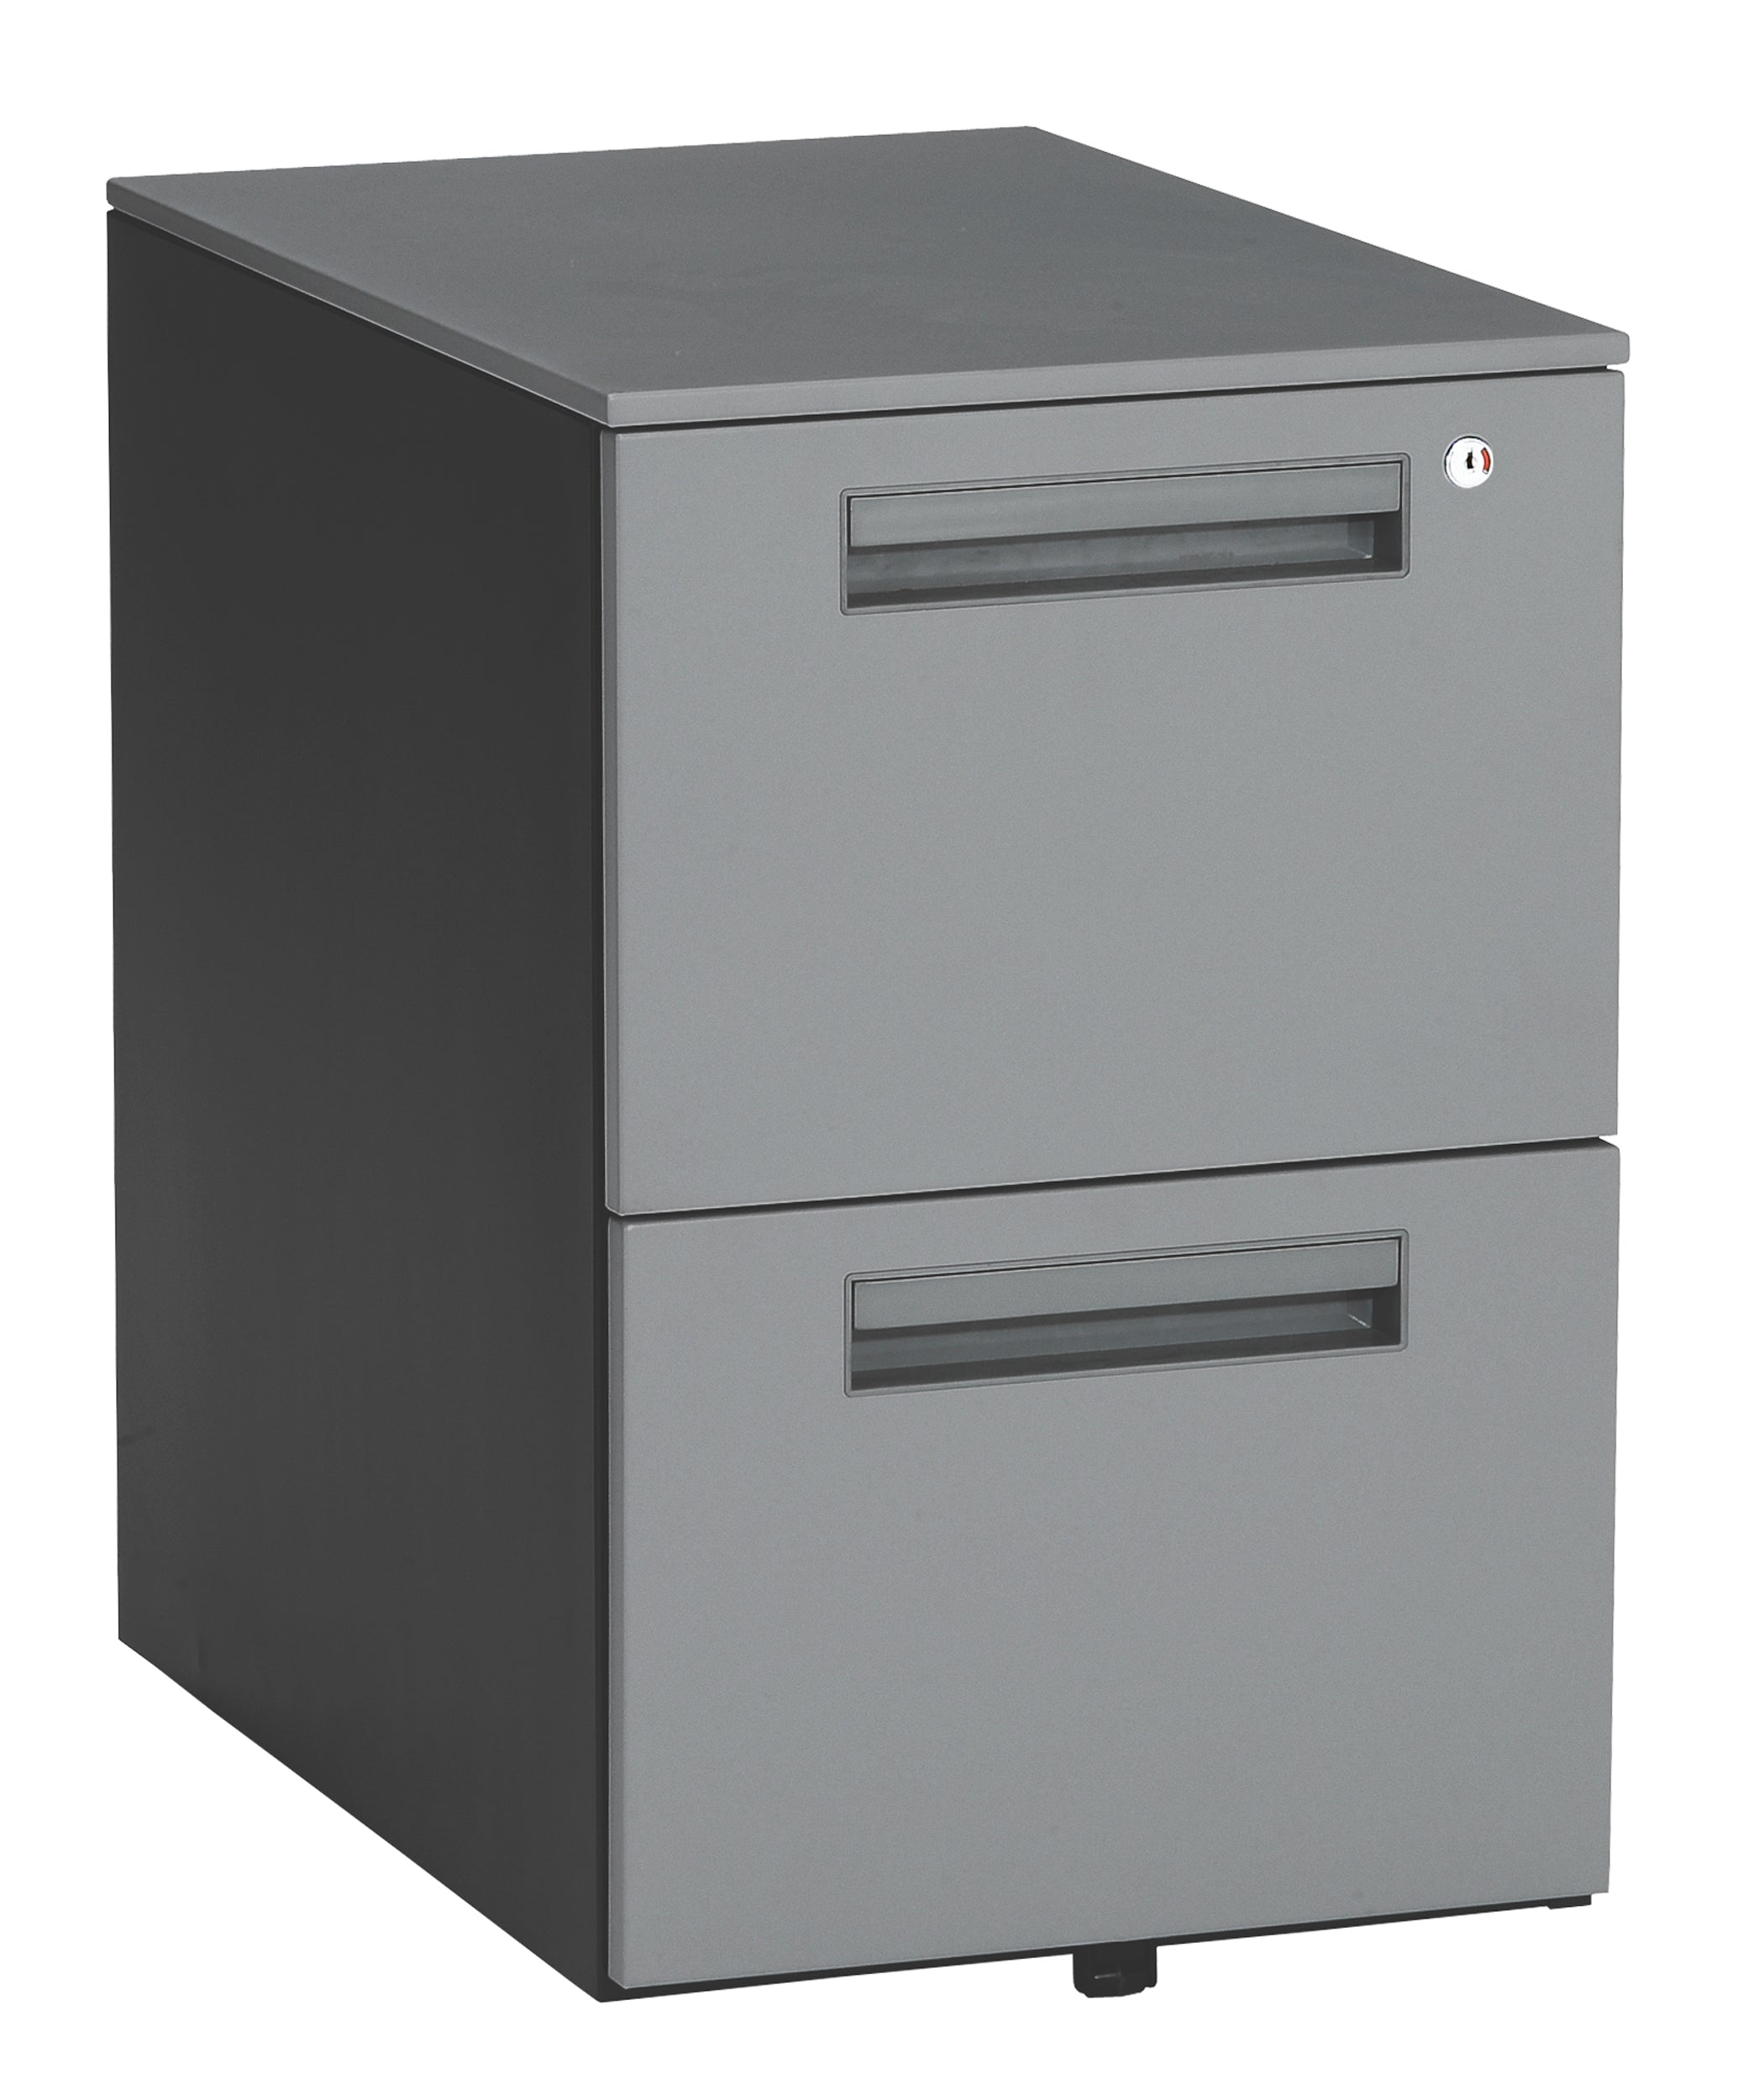 Model 66200 Mesa Series Wheeled Mobile 2-Drawer Steel File Cabinet